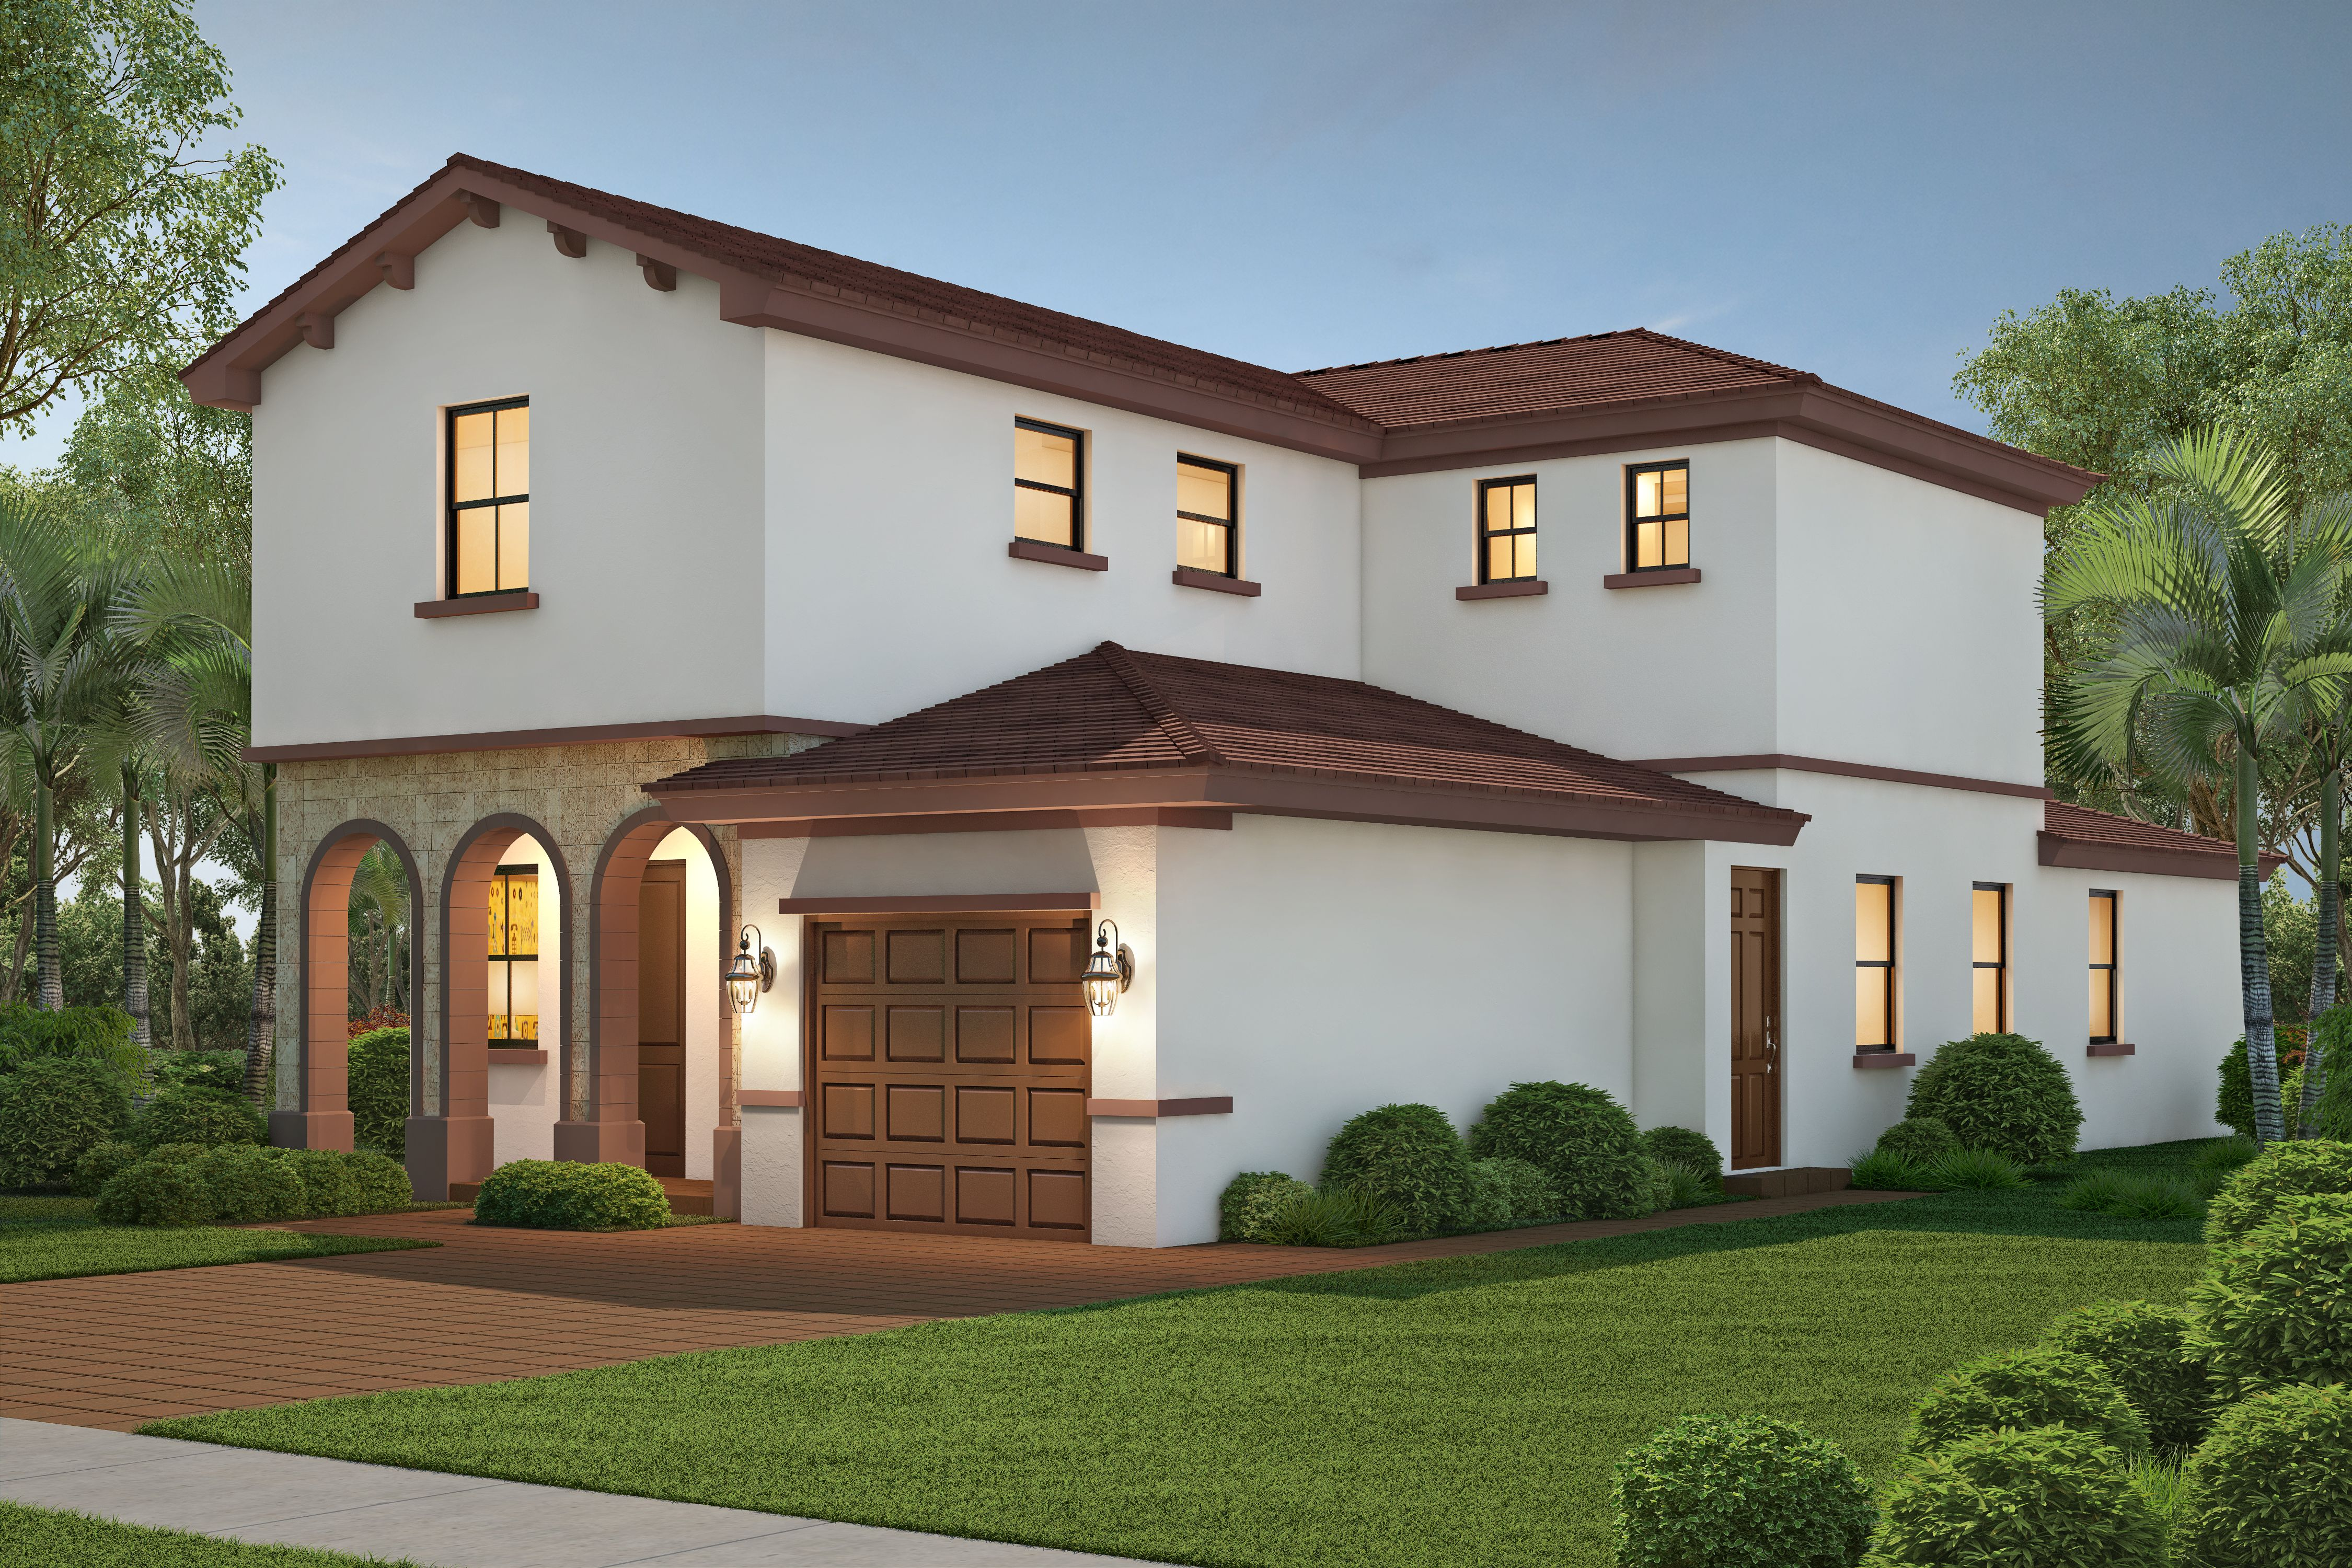 Next Gen Homes Are Coming To Aquabella In Hialeah Fl Rate This Home From 1 10 Lennar Miami Hialeah Ne Miami Real Estate Florida Real Estate New Homes